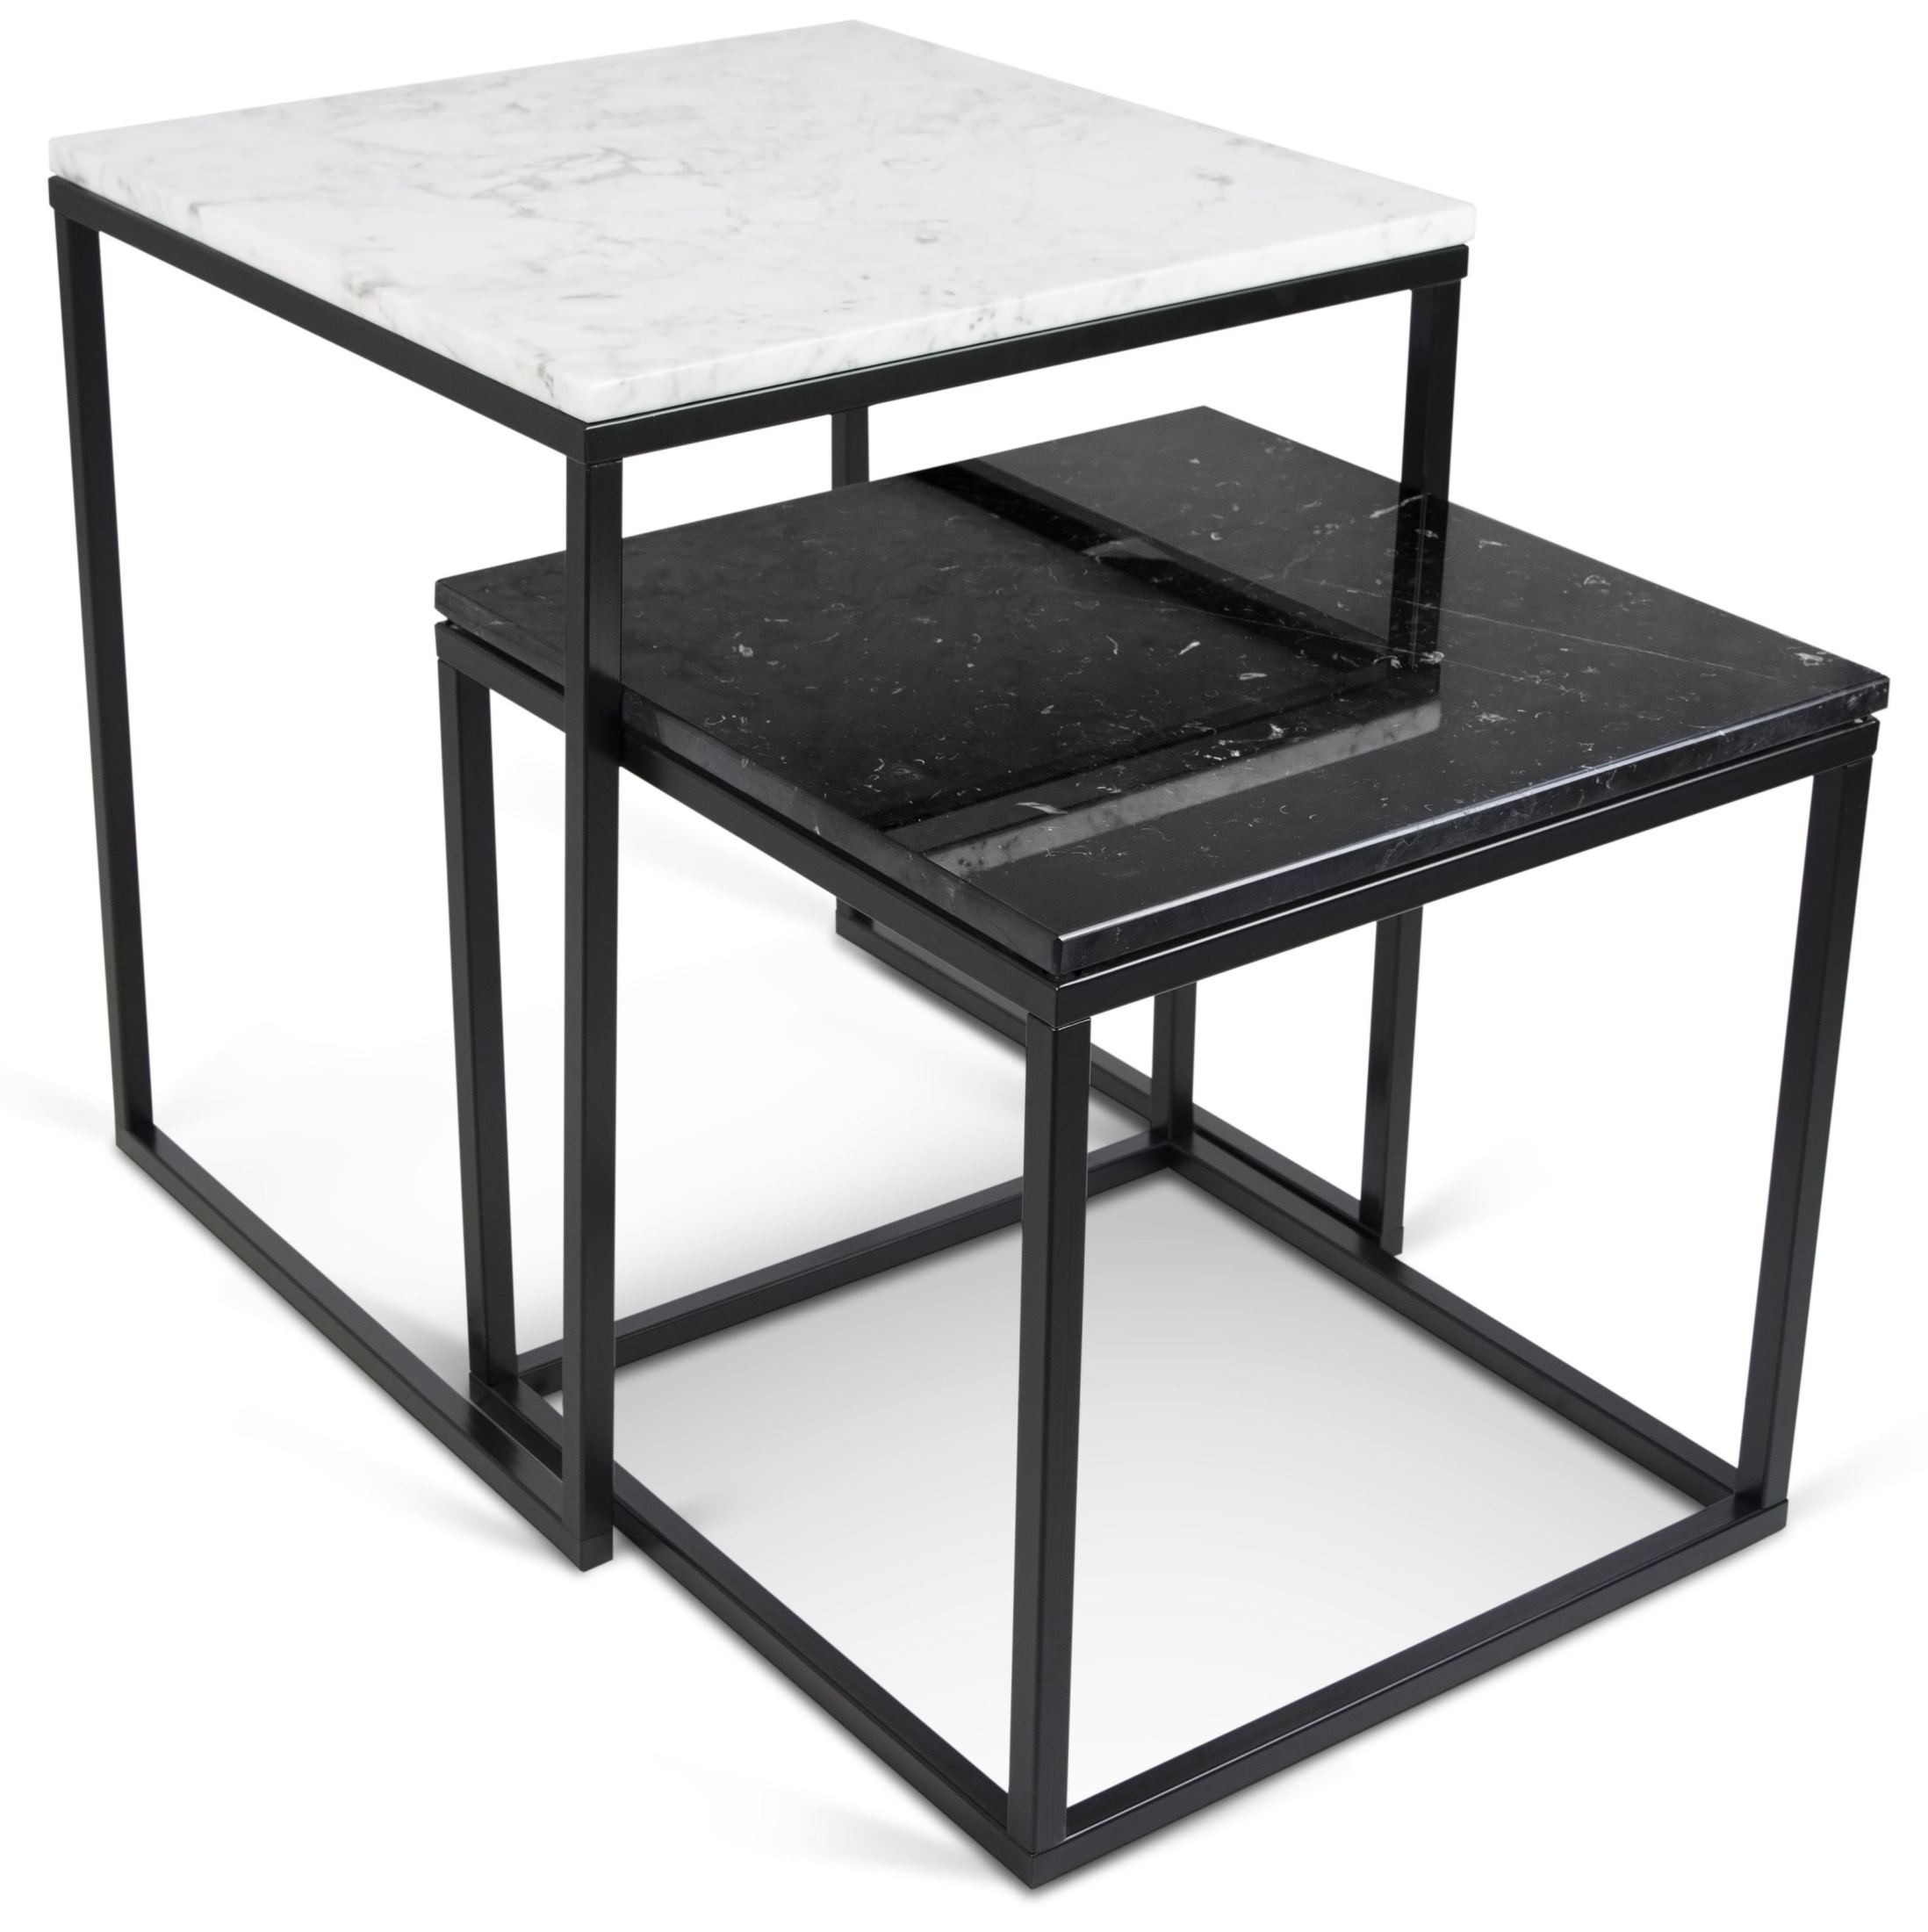 Prairie White Marble Top Nesting Tables 9500.312557 Tema Home. Full resolution  image, nominally Width 2196 Height 2200 pixels, image with #5F646C.